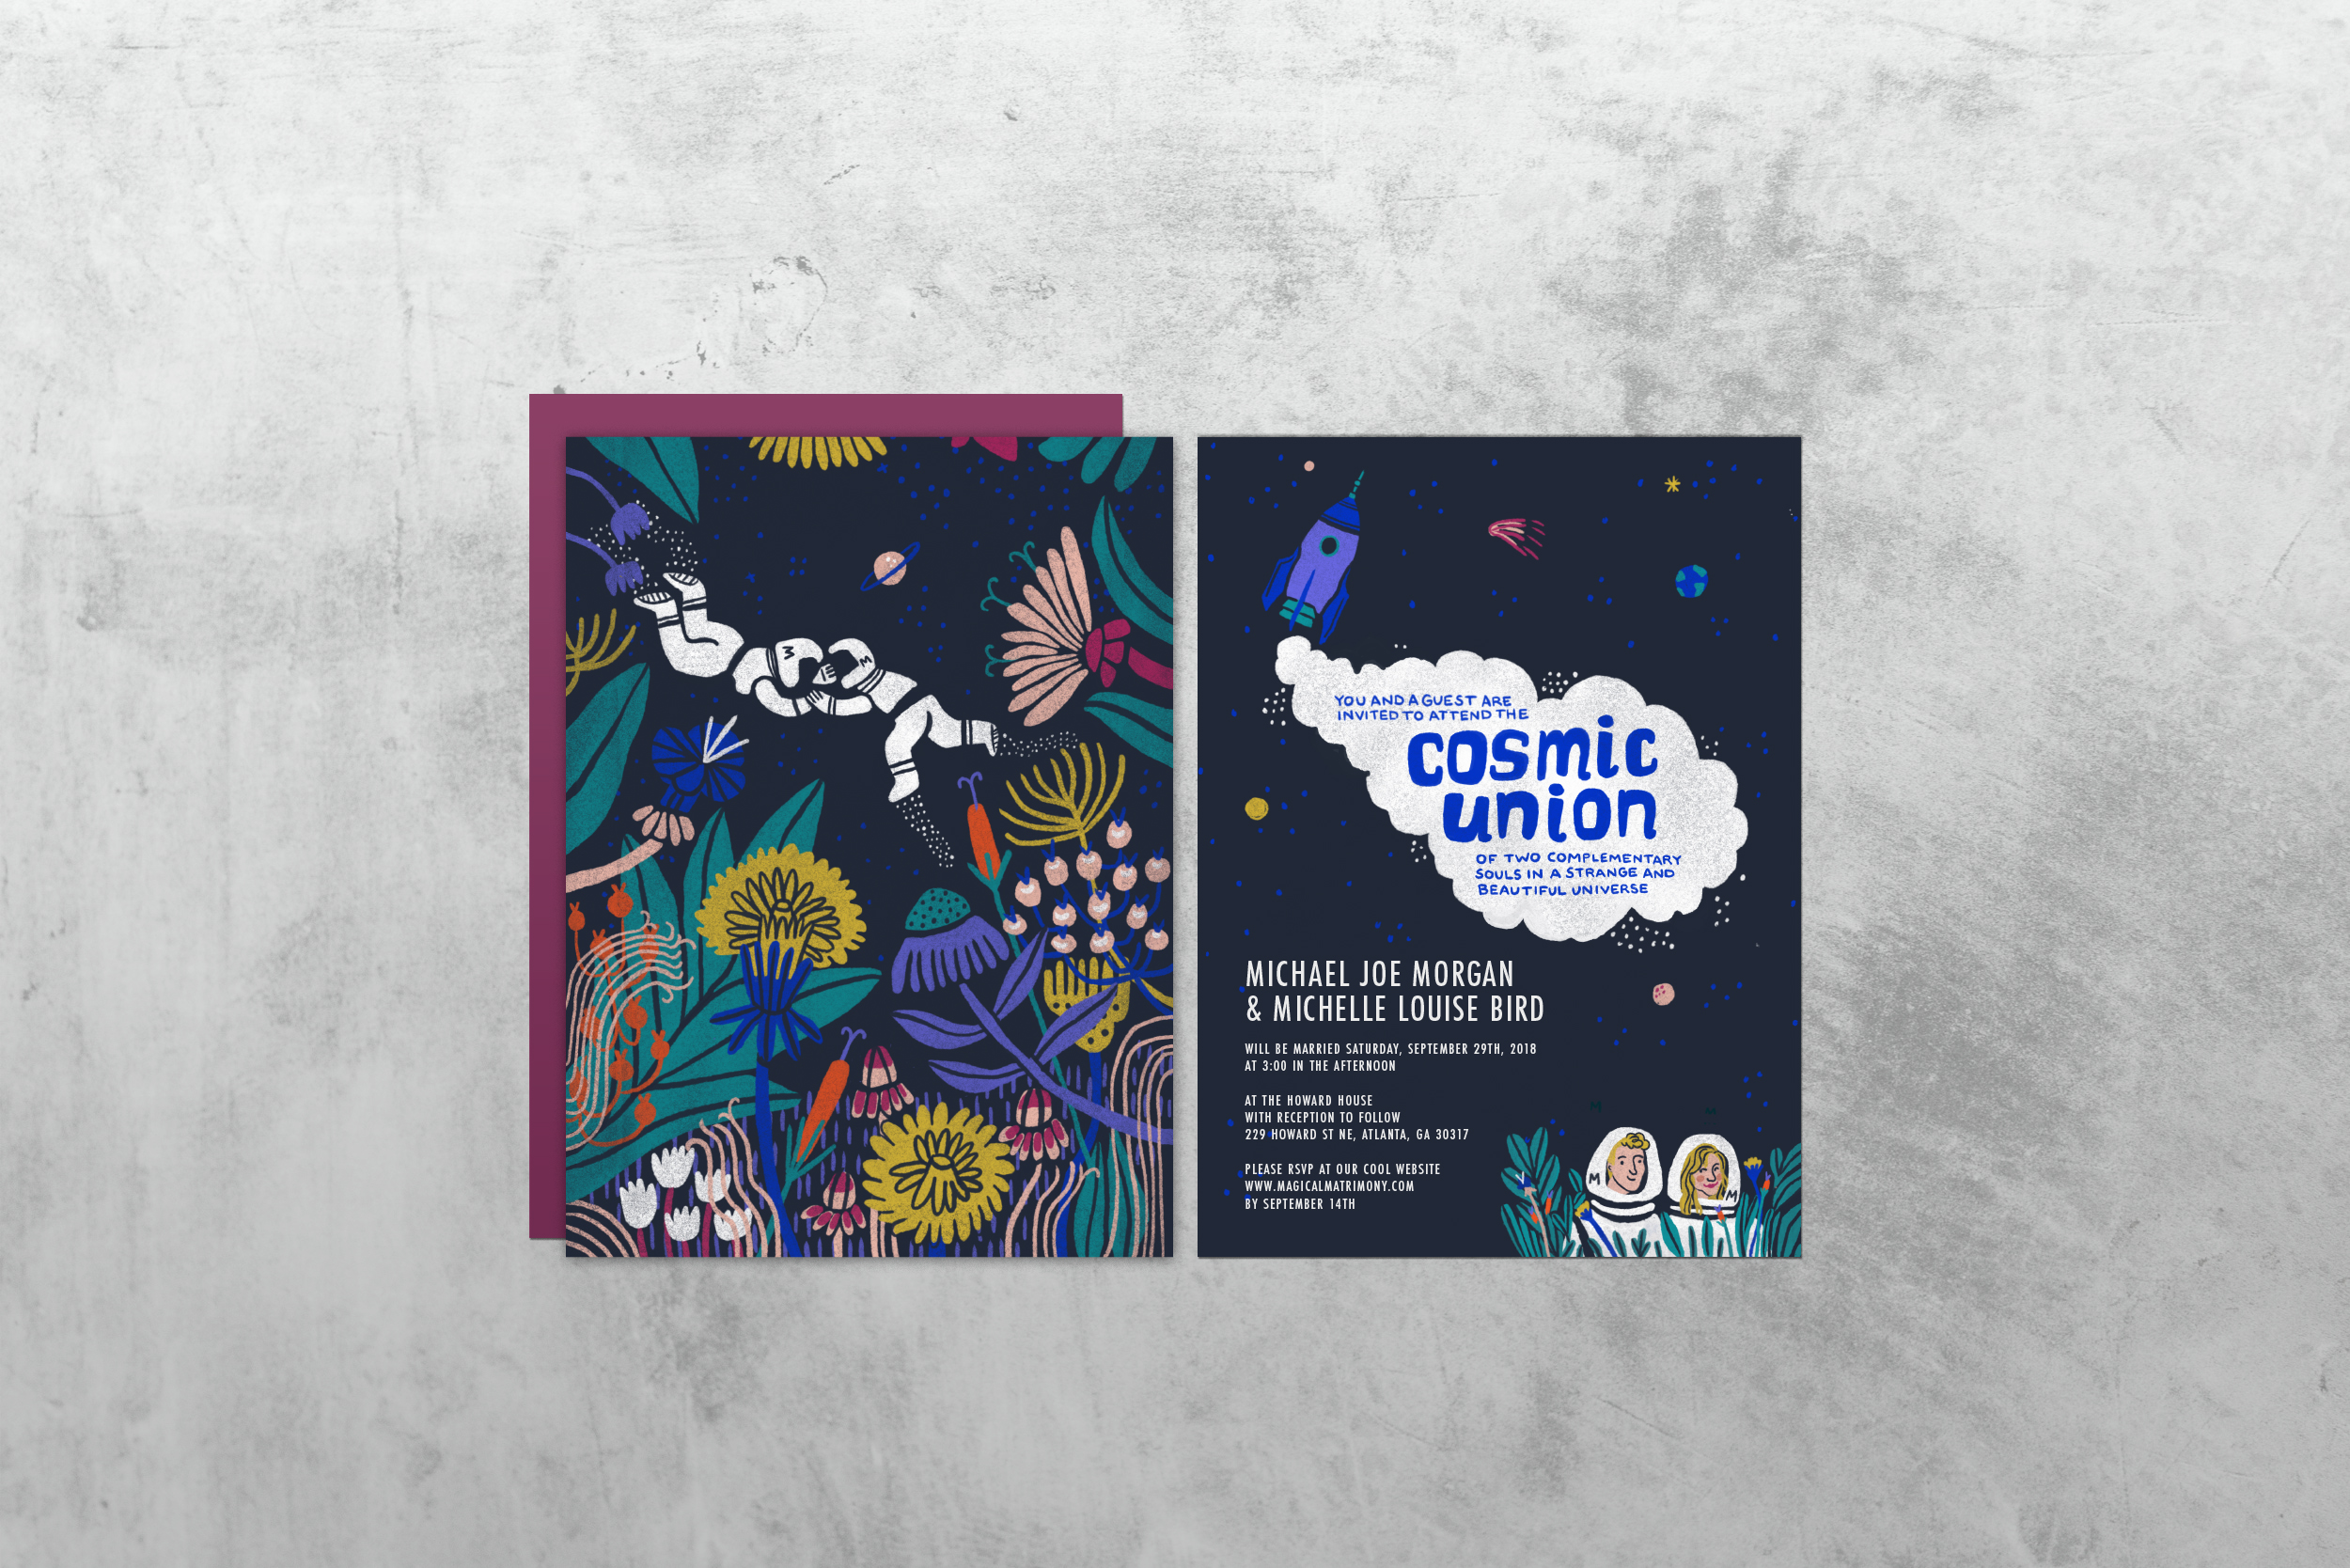 cosmicunion_invitation_mockup.jpg